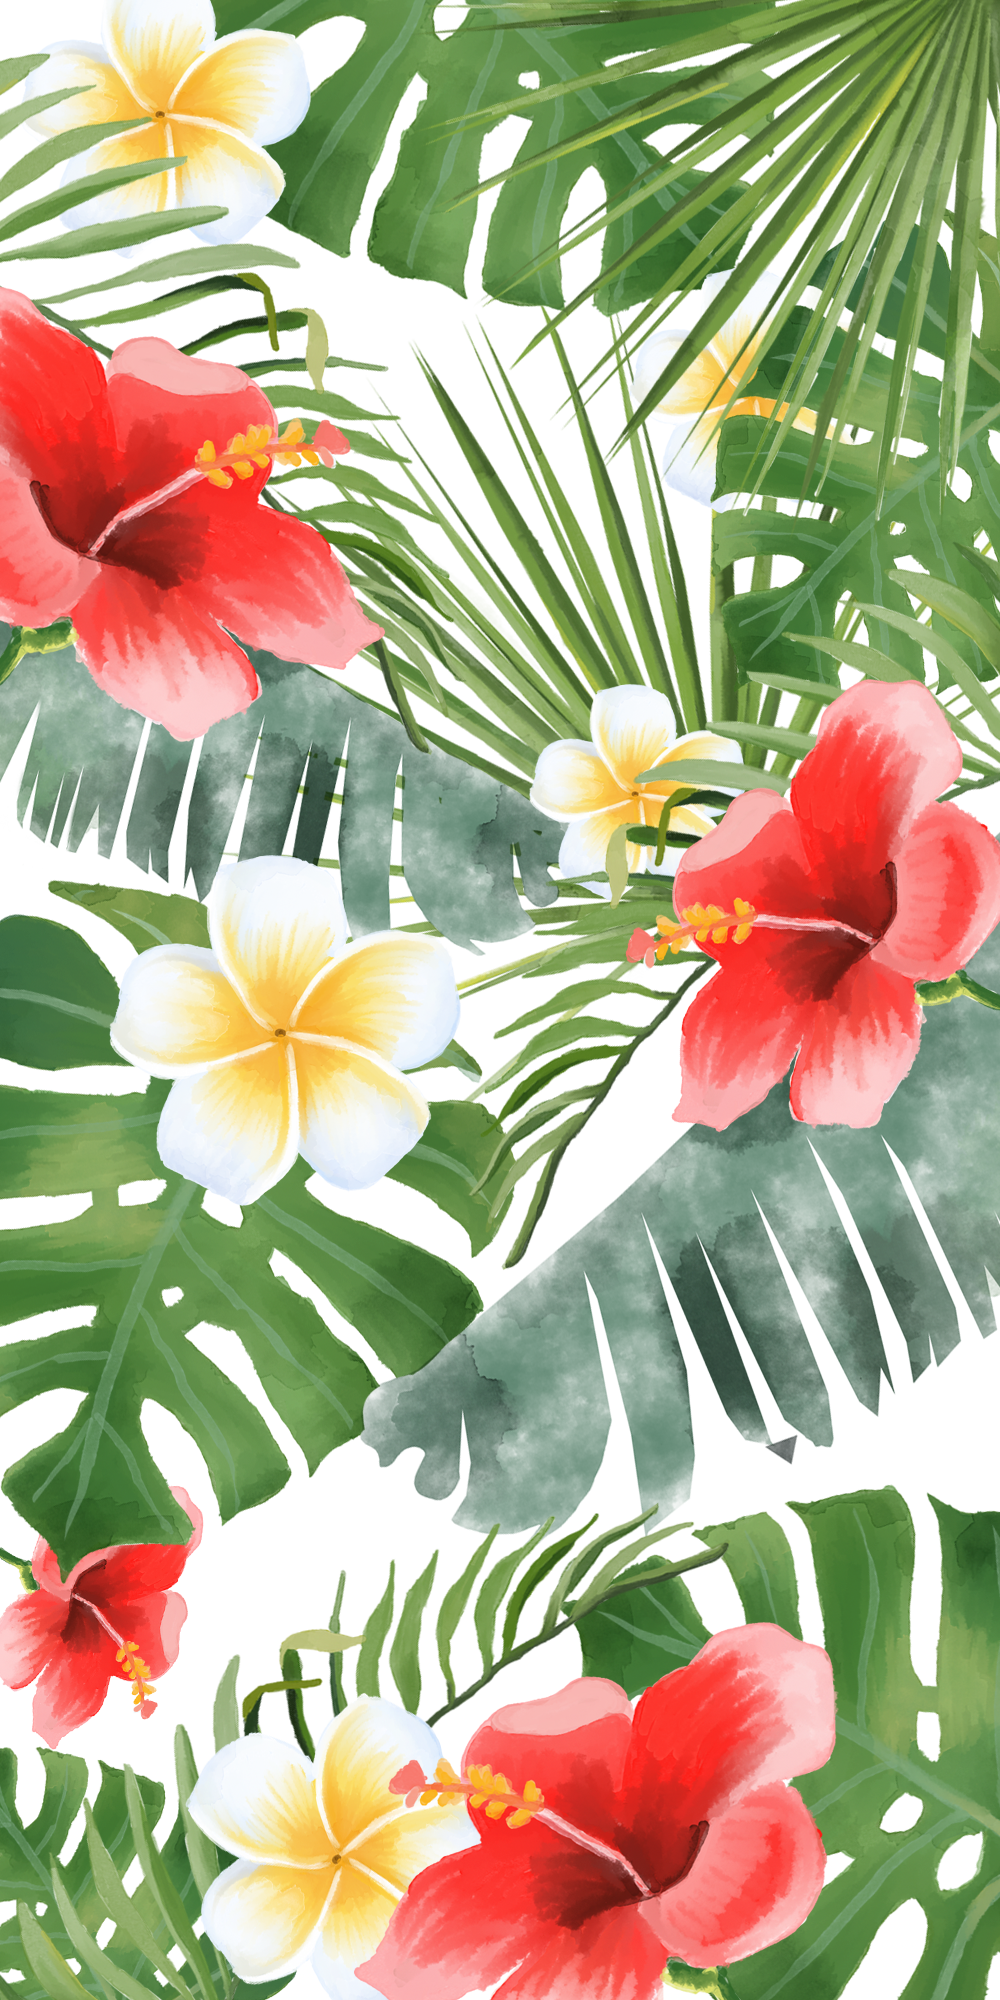 If You Re Into Tropical Vibes Casetify Iphone Flowers Floral Beautiful Color Insp Iphone Wallpaper Tropical Drawing Wallpaper Floral Wallpaper Iphone